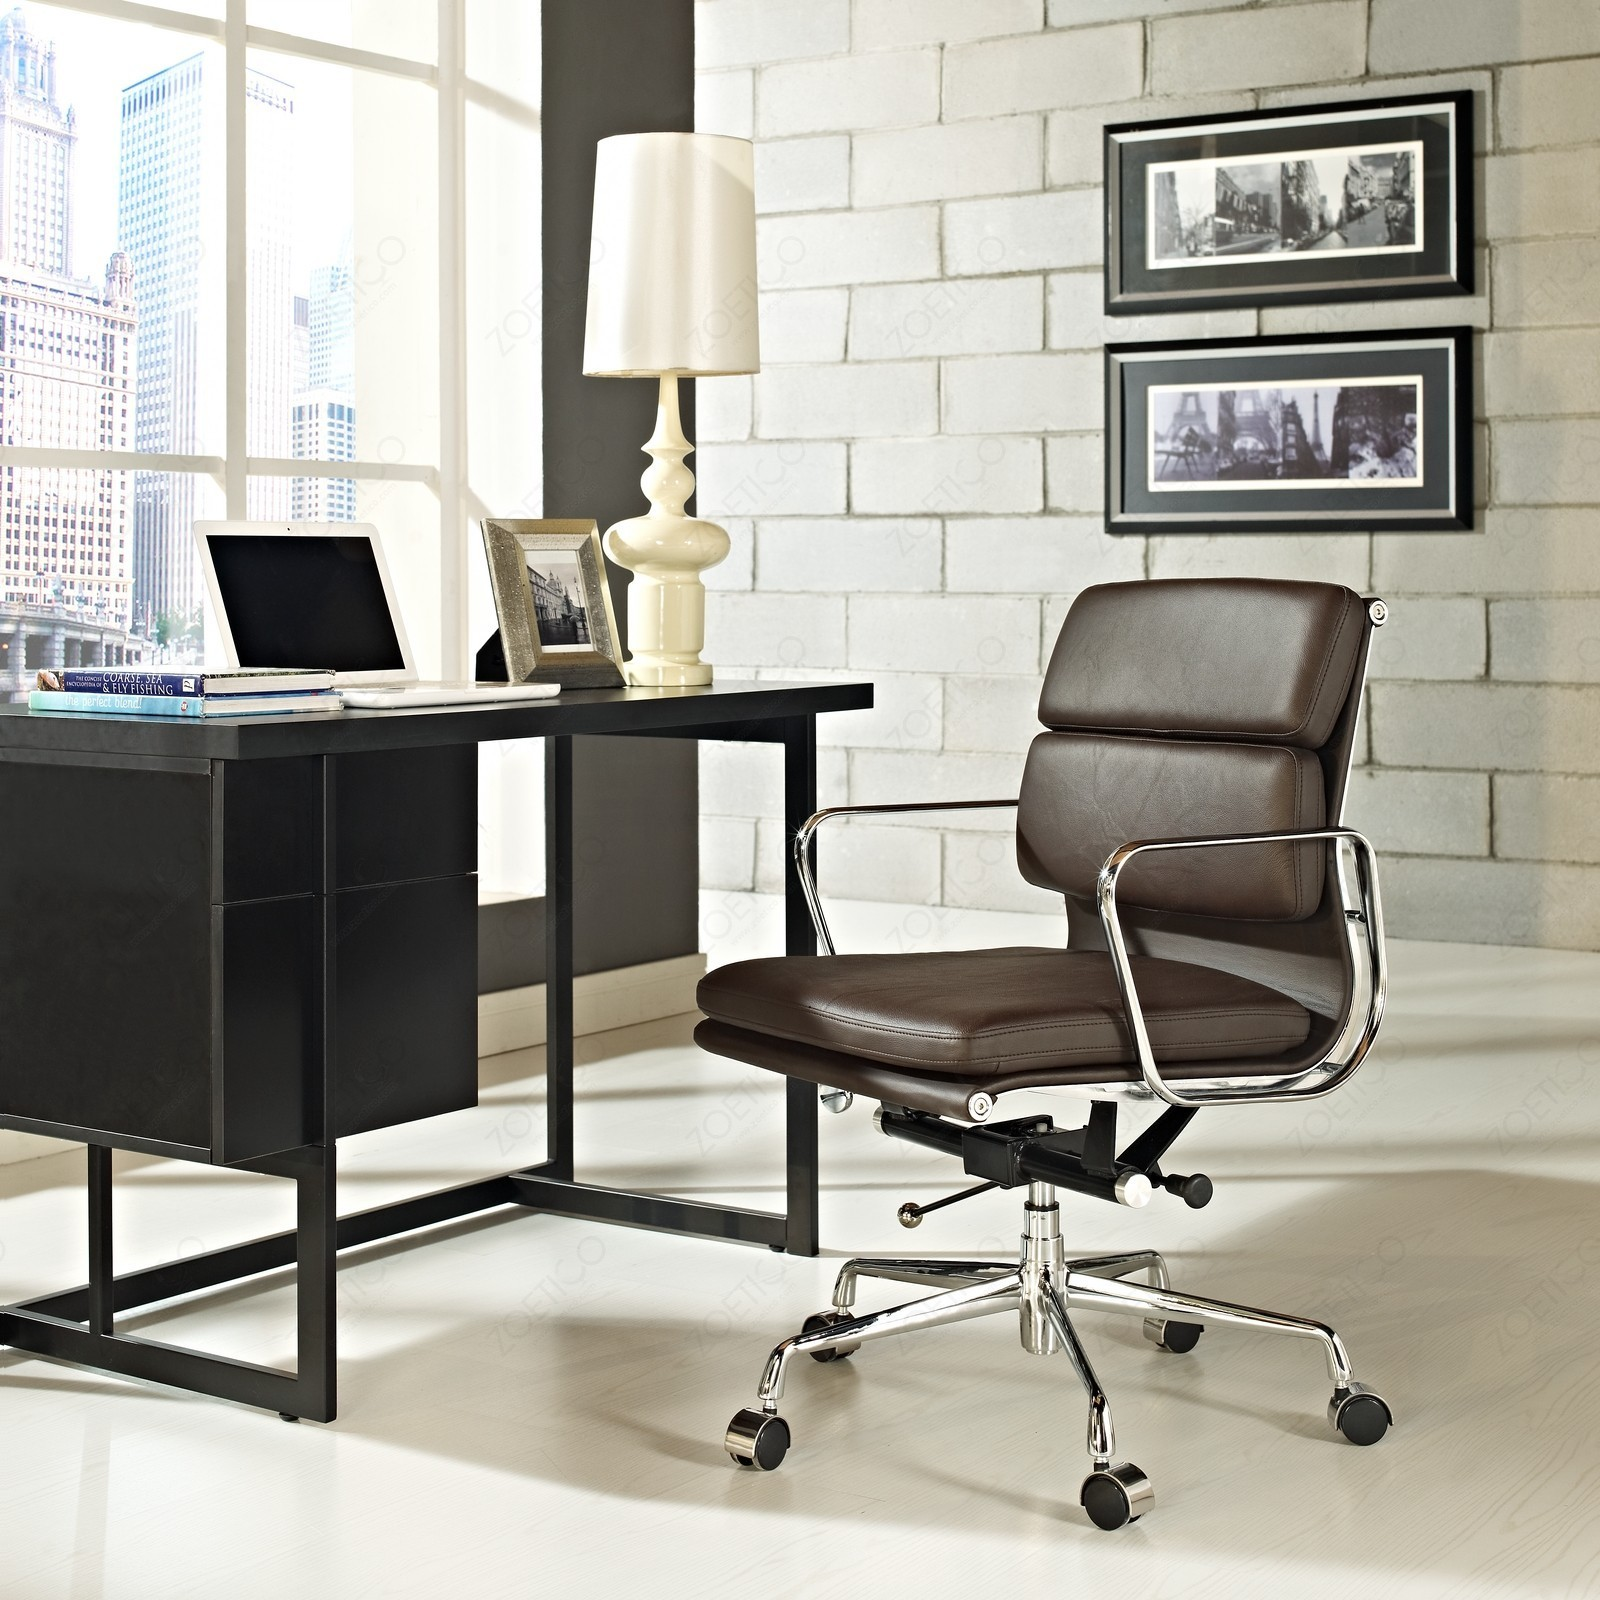 Soft Pad Management Chair Eames fice Chair modern classic furniture